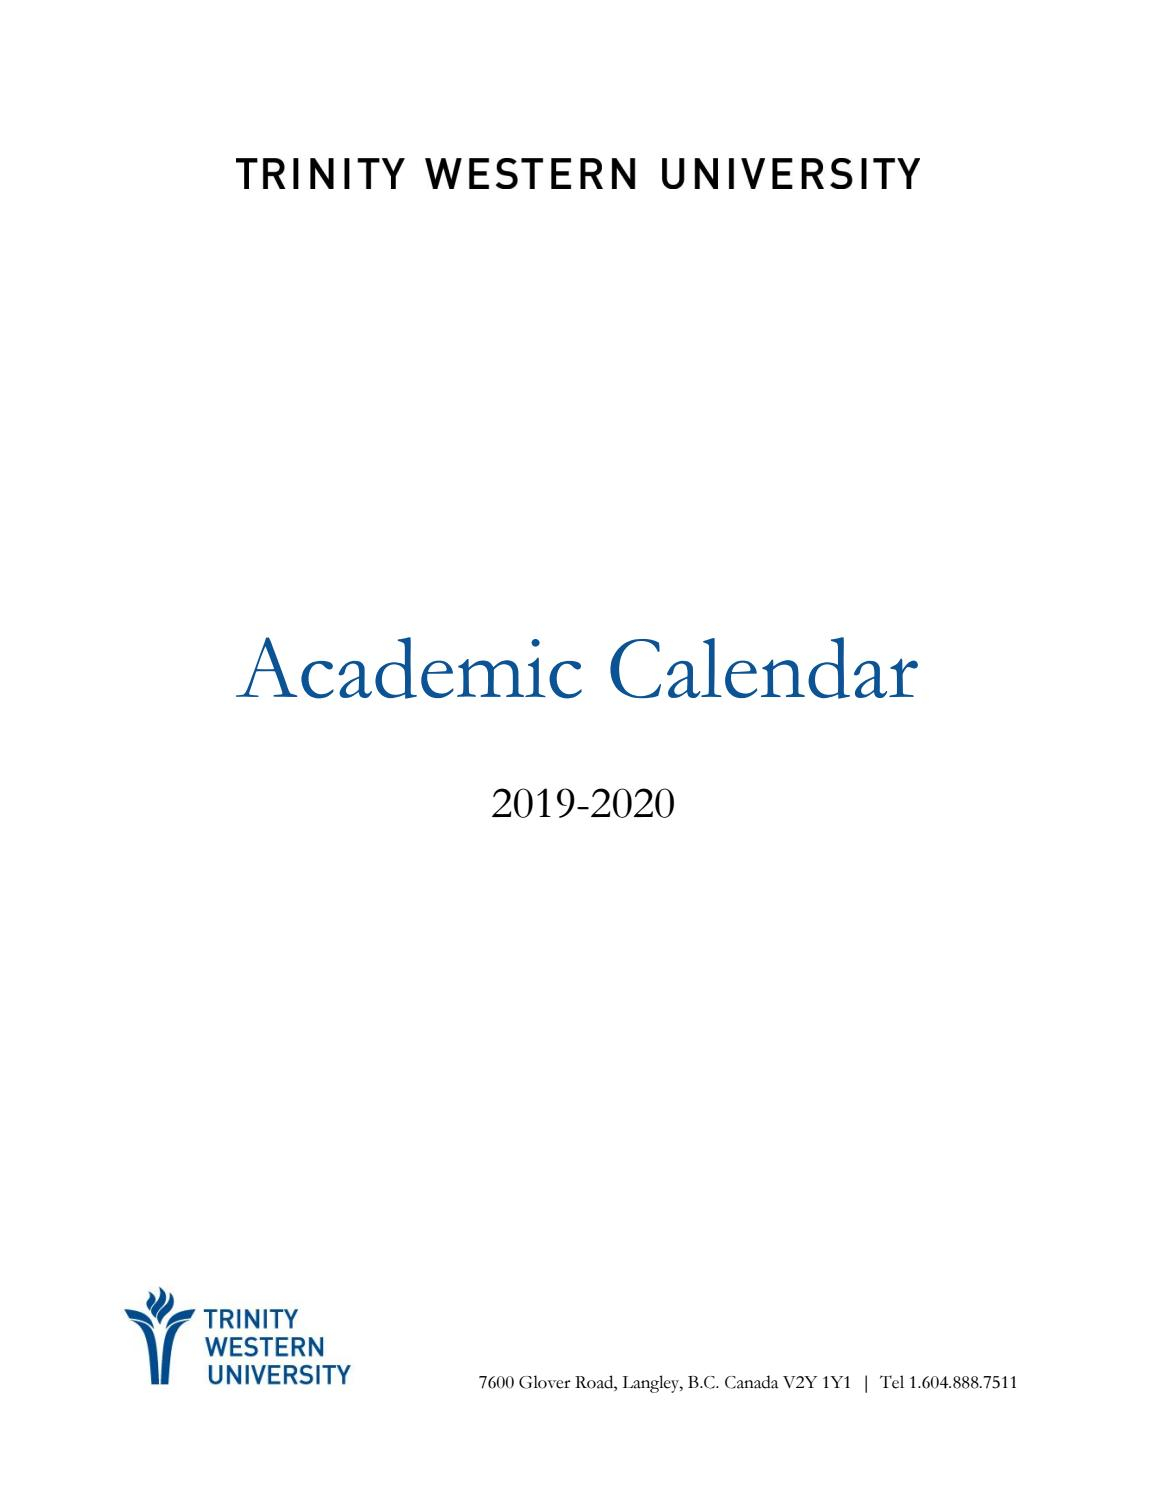 2019 20 Academic Calendartwu - Issuu Pertaining To Saint Rose Academic Calendar